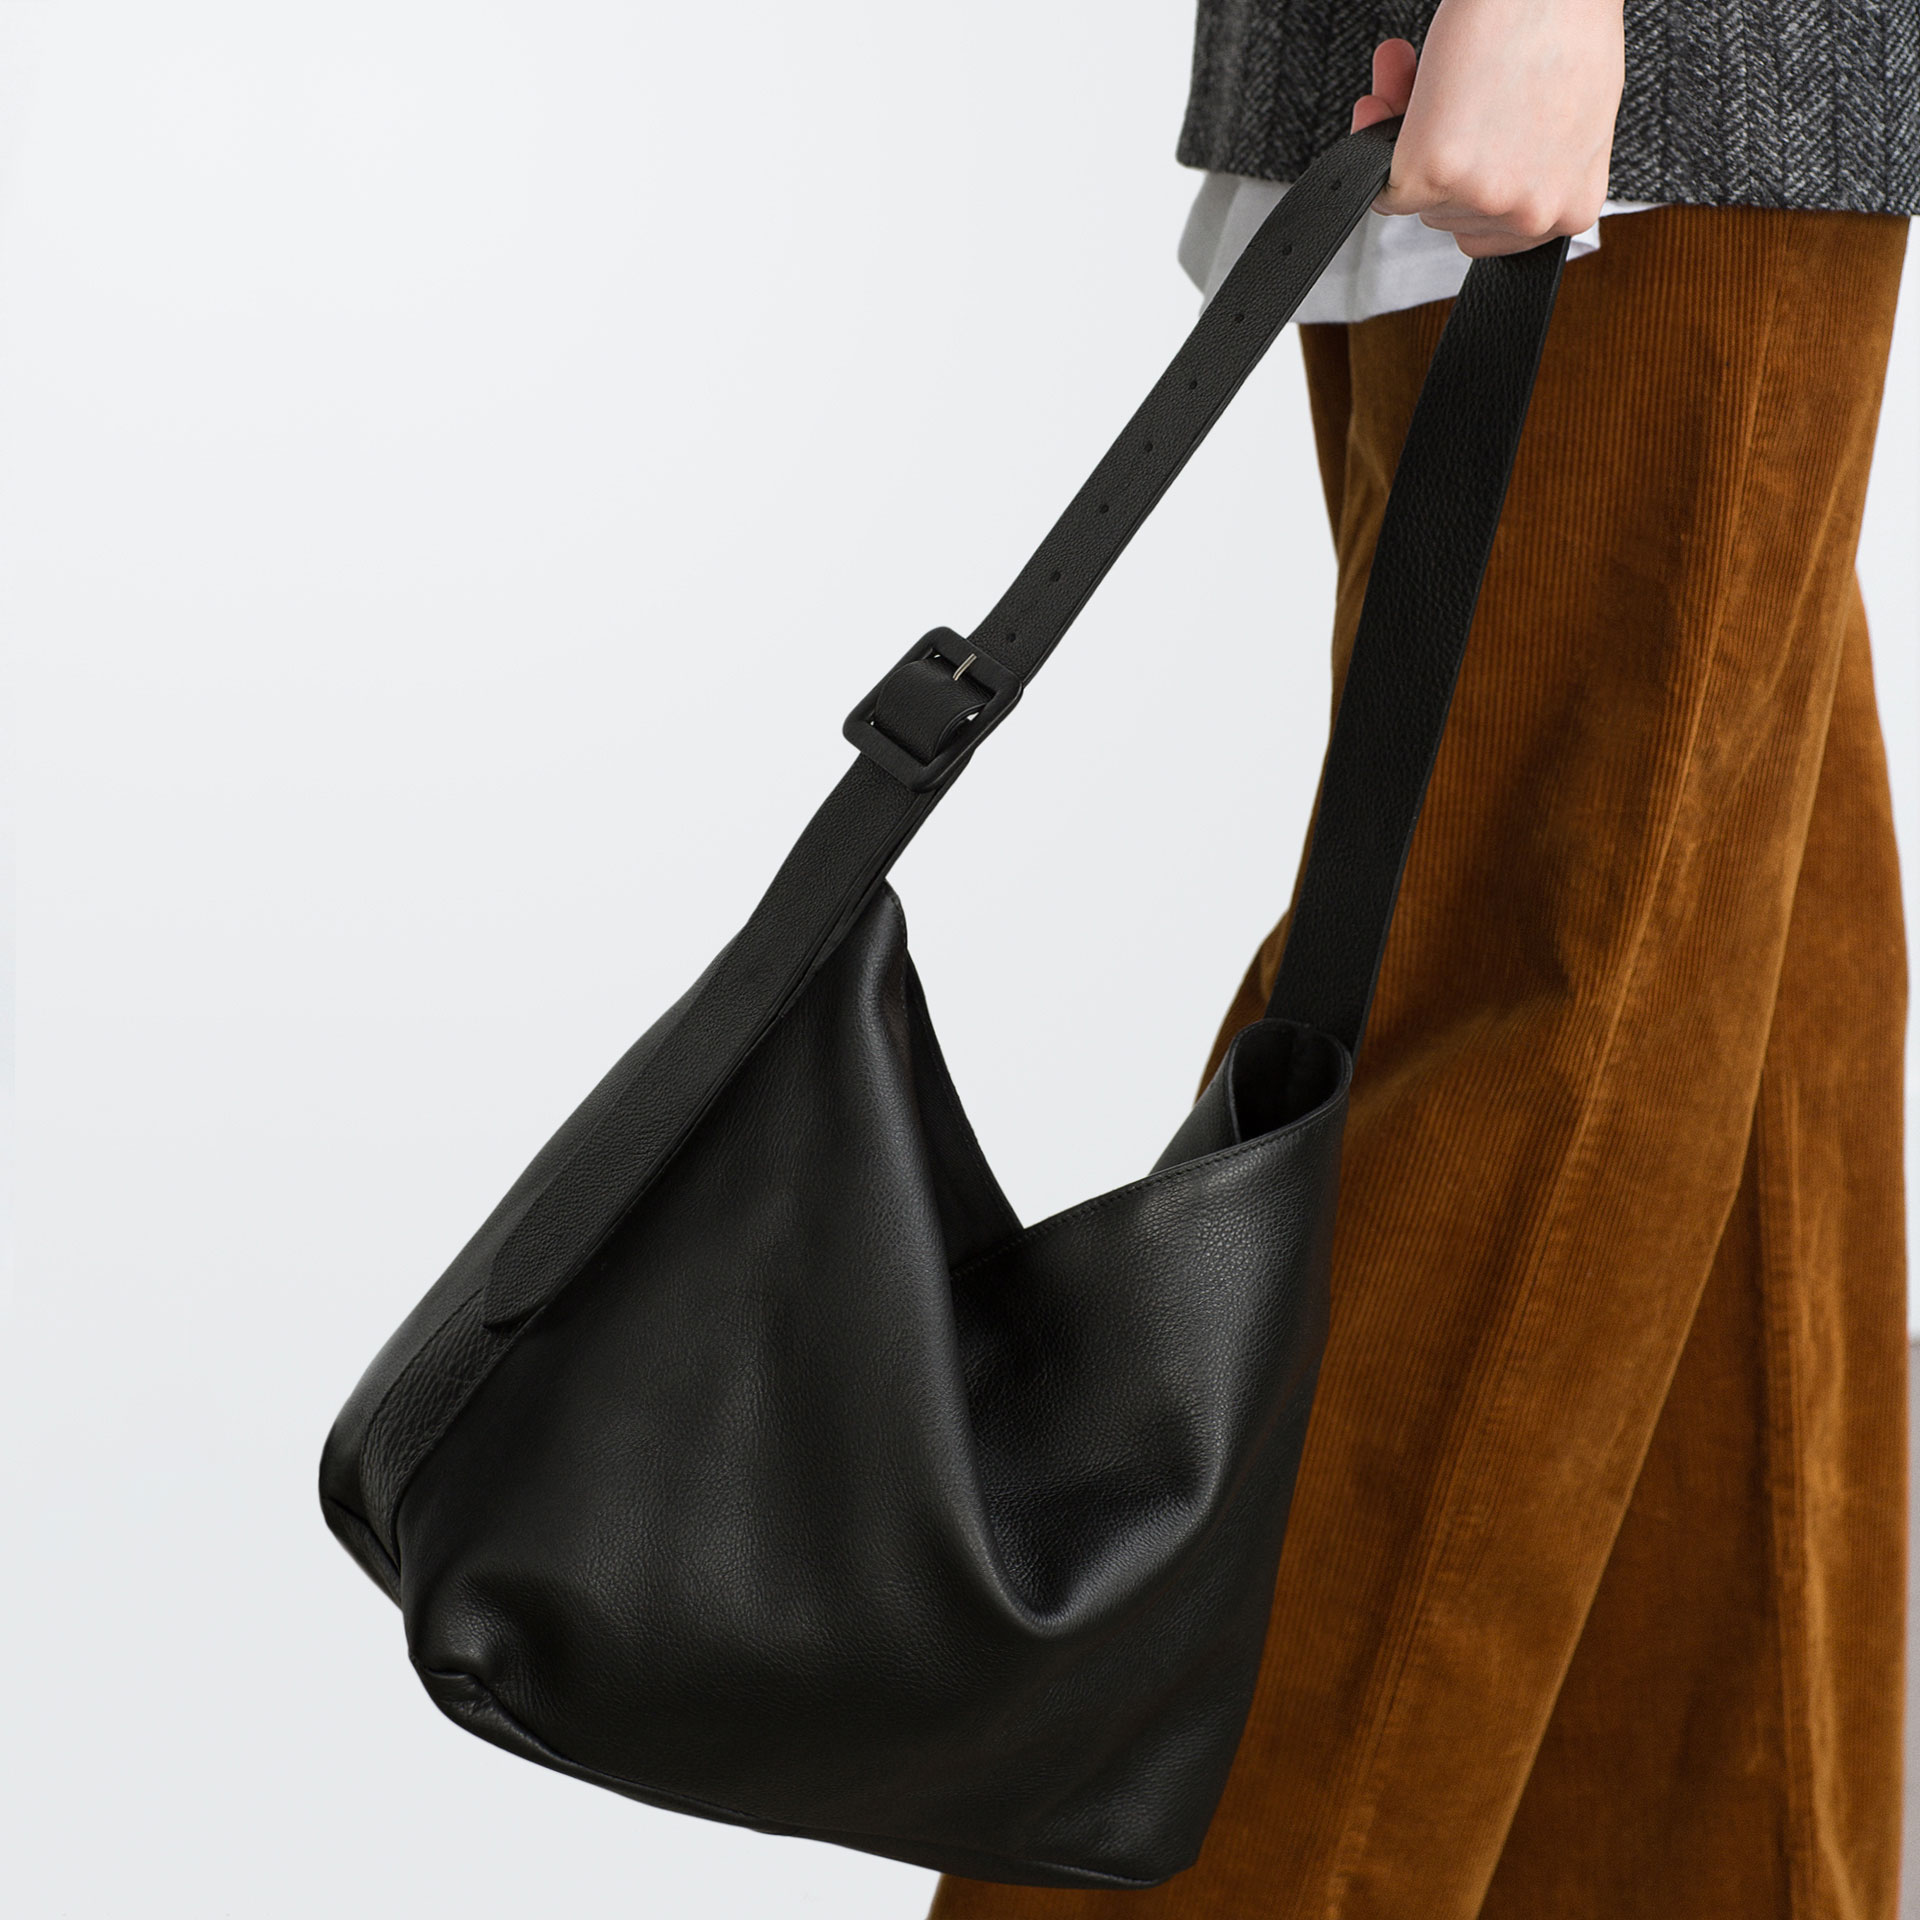 Black bags: some splurgy, others less so - Girls of a Certain Age ...